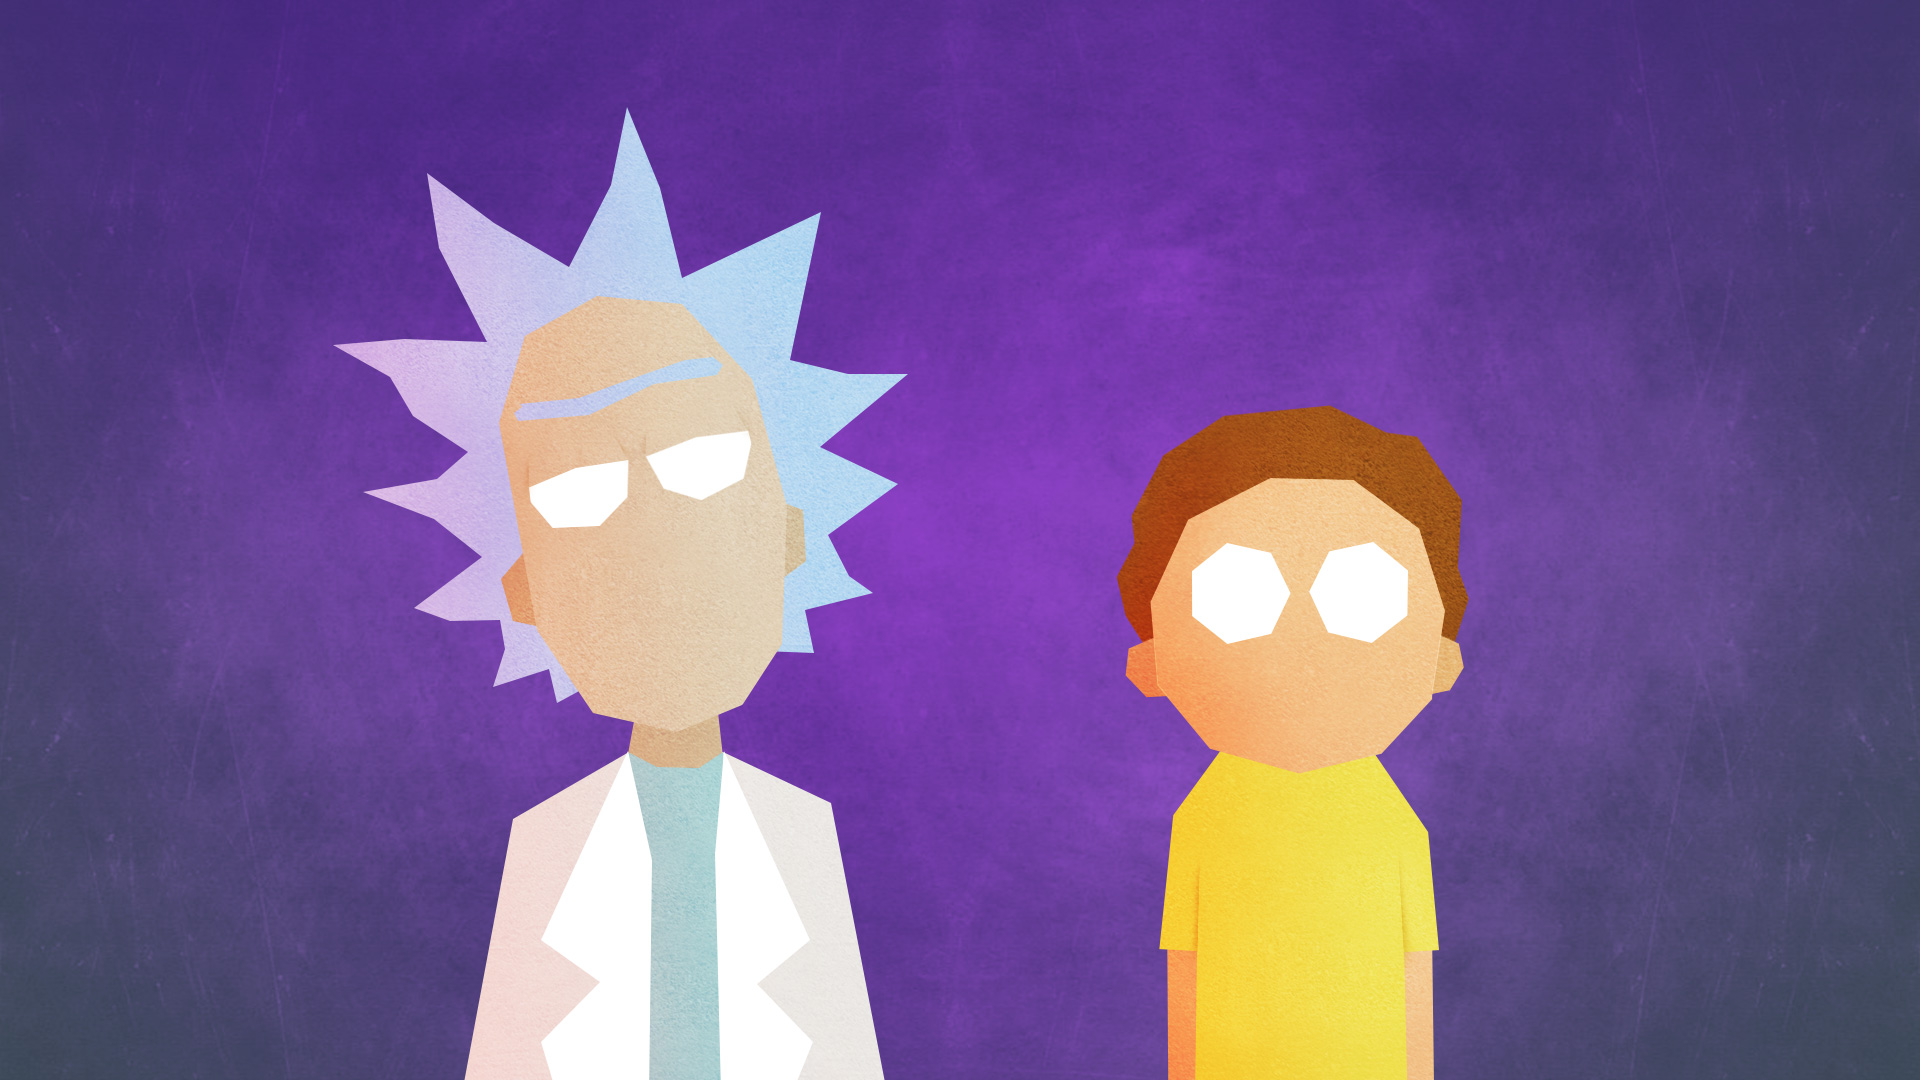 rick and morty minimalist hd tv shows 4k wallpapers images